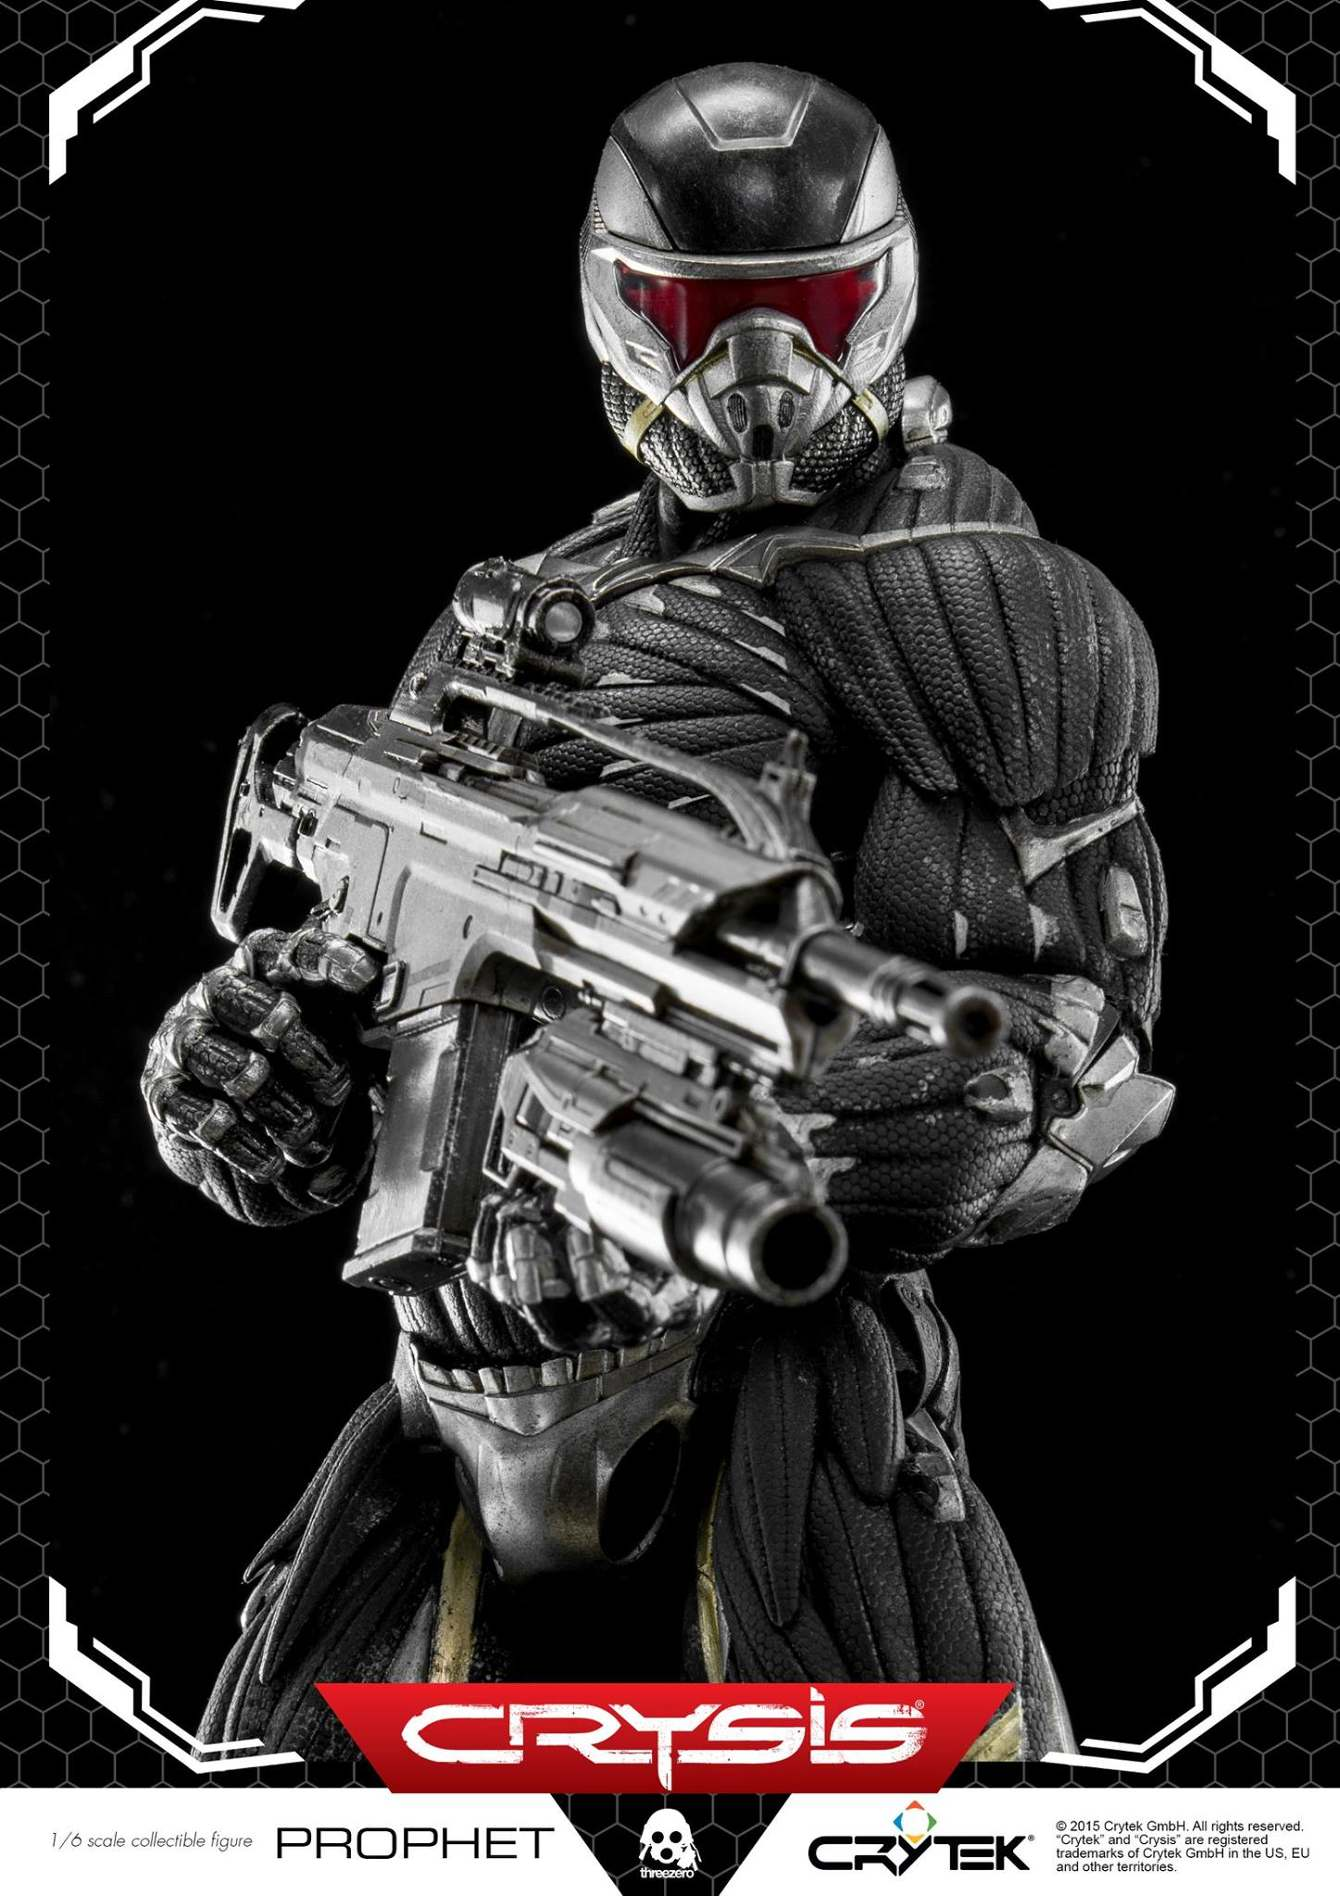 ThreeZero-Crysis-video-game-Prophet-CRY12_1340_c.jpg